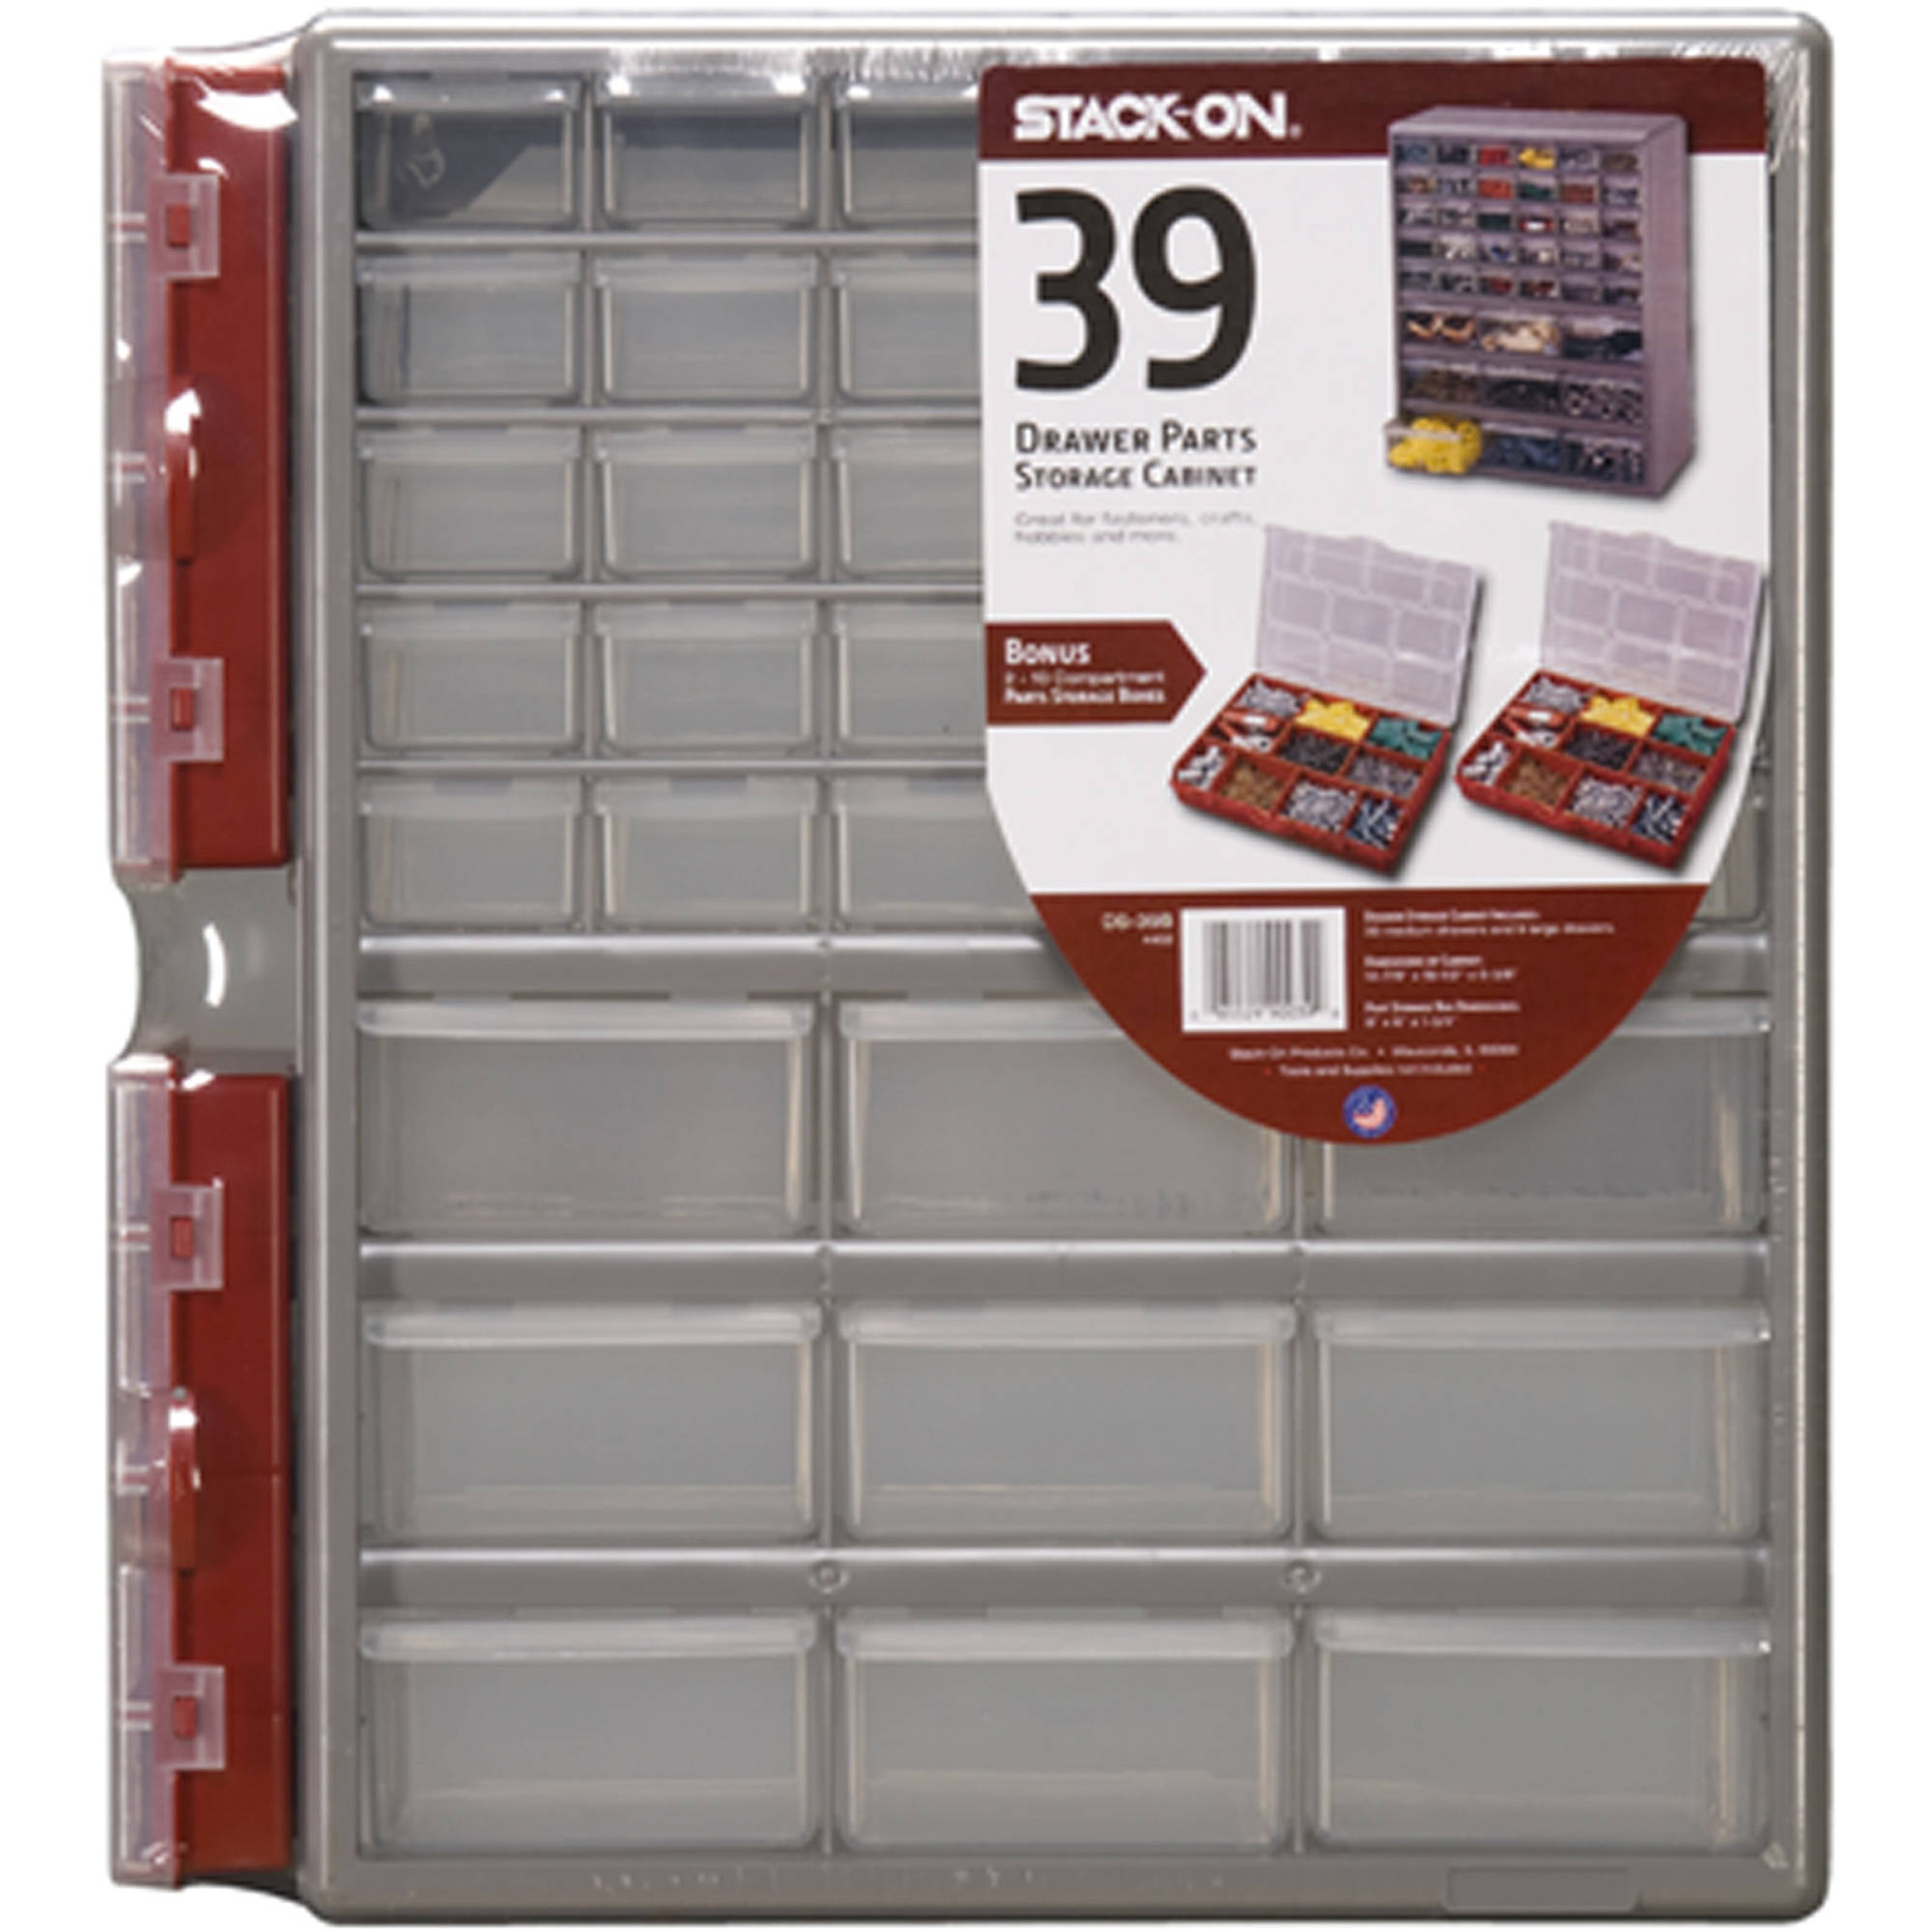 Stack-On DSR-39B 39-Drawer Storage Cabinet with 2-10 Compartment Storage Boxes